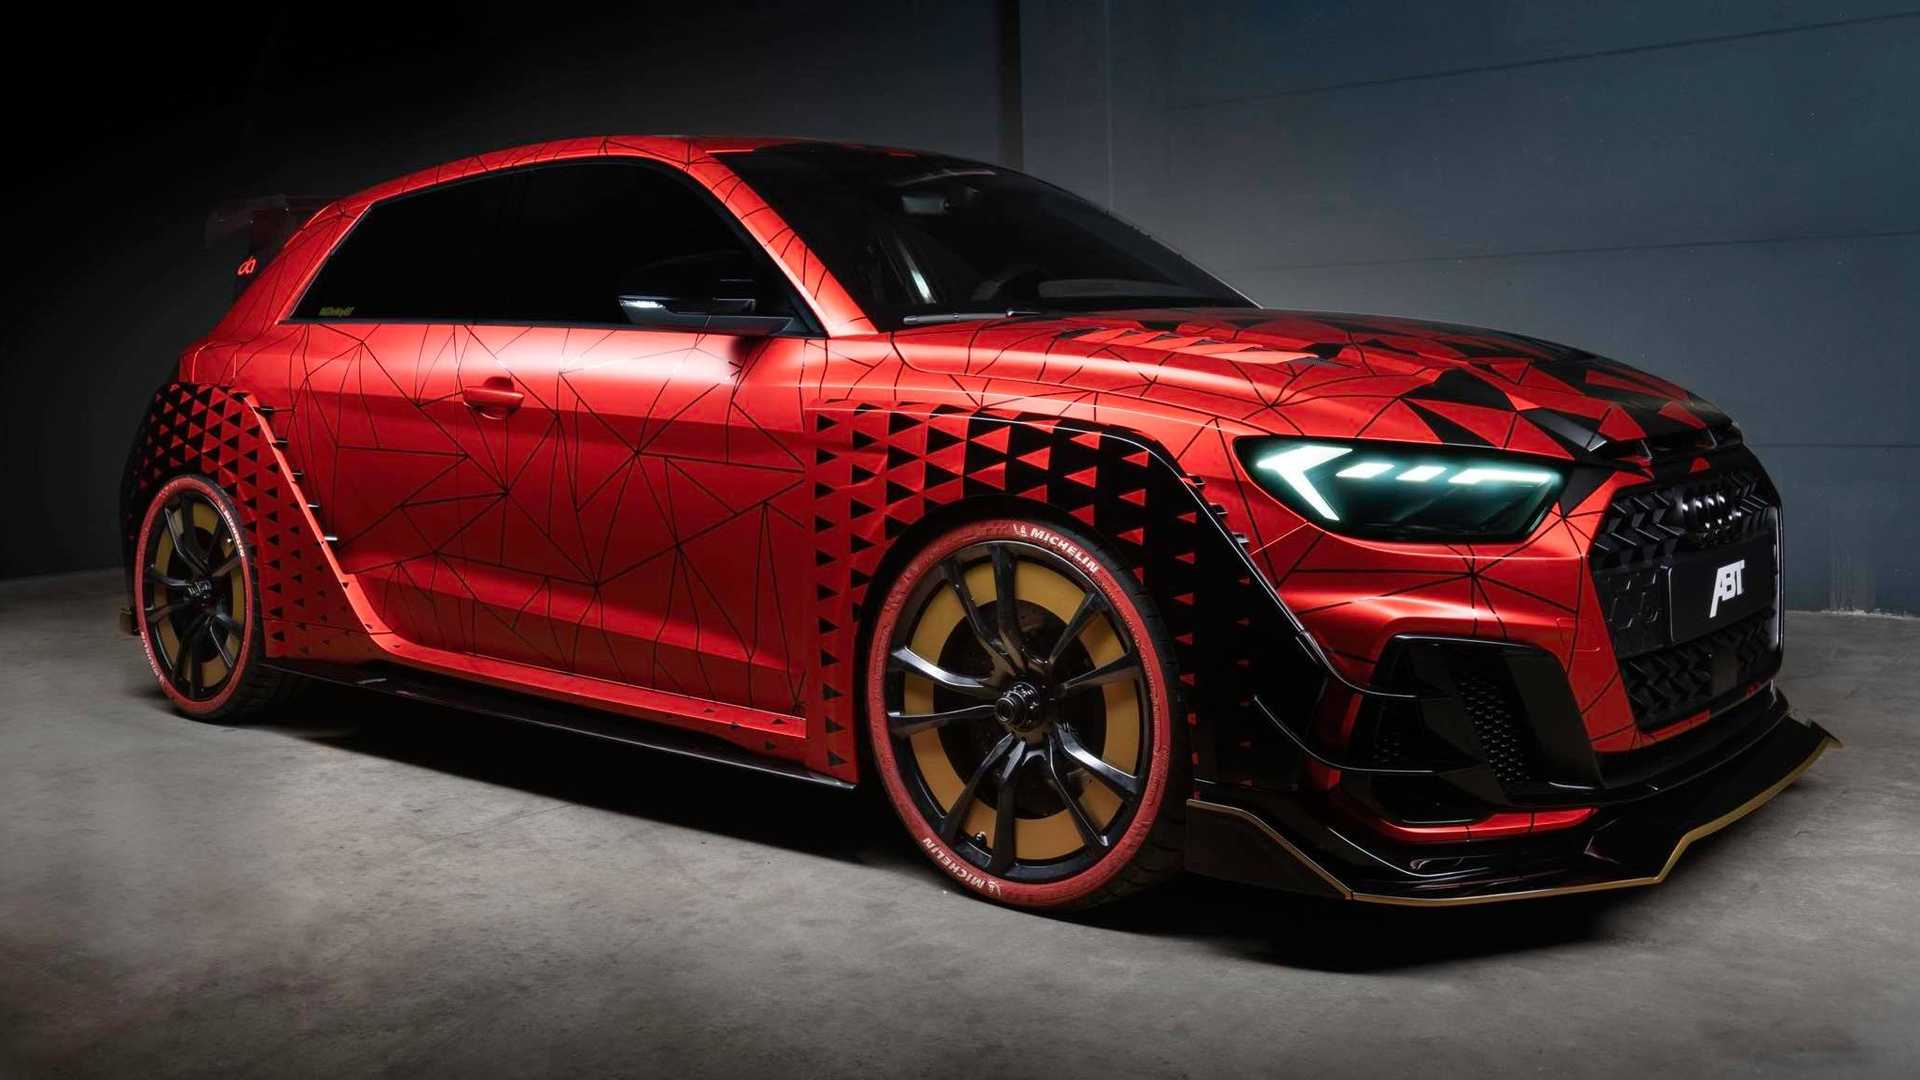 ABT had already released some upgrades for the new Audi A1 hatchback, but their One of One project is a different story altogether: the car gets a racing-spec engine from the Audi TT Cup.